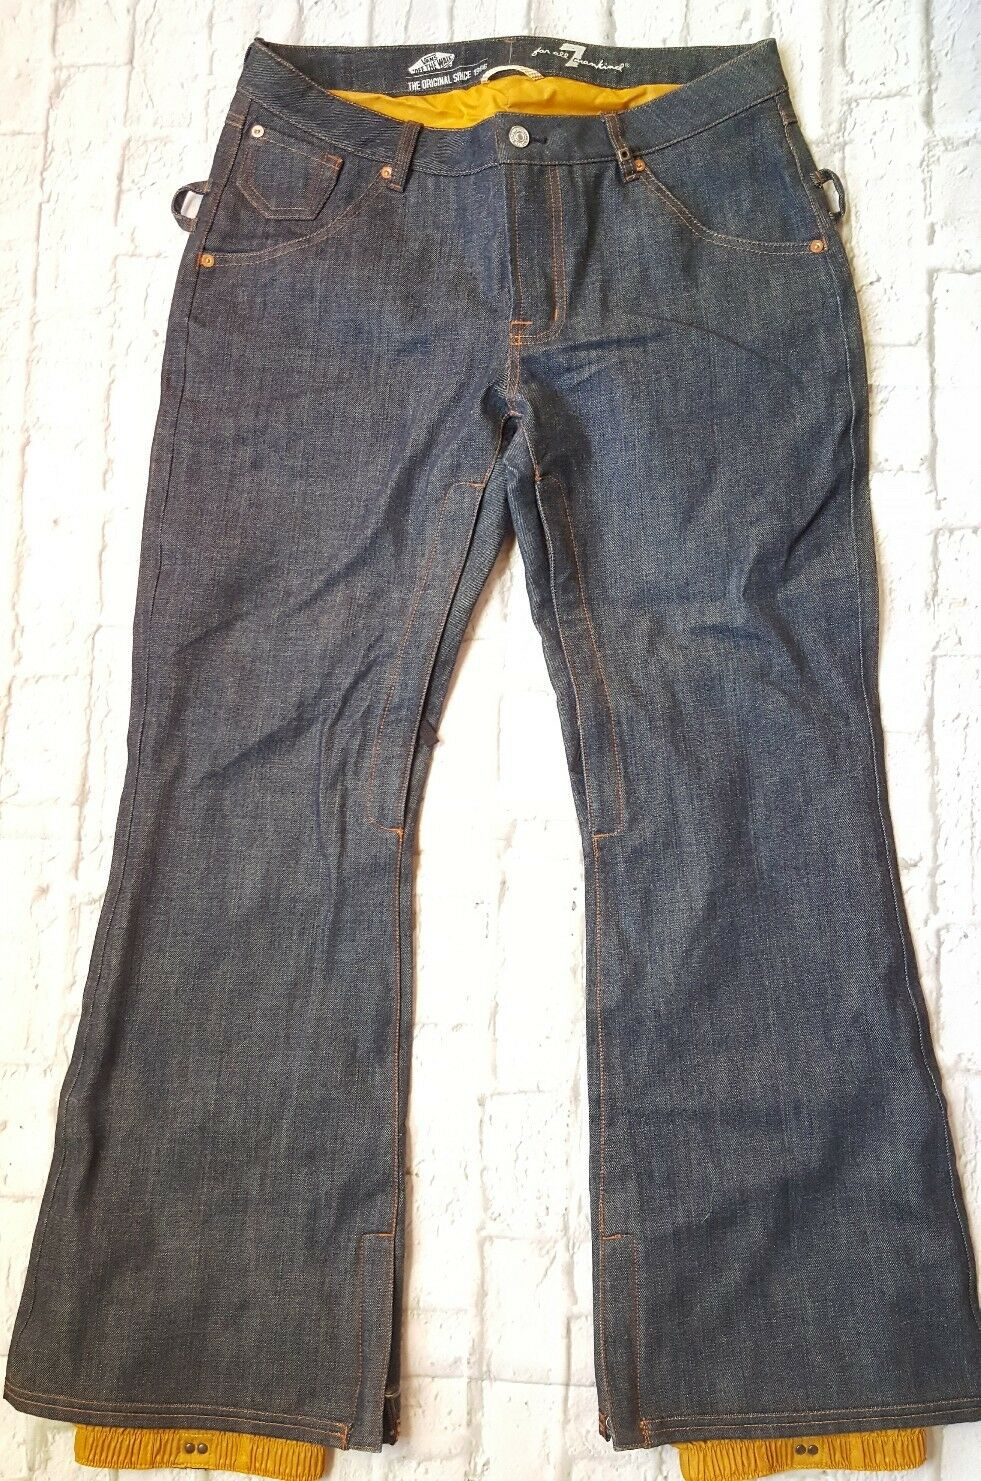 Vans  X 7 For All Mankind Womens Large Snowboard Ski Pants Denim Jeans Flare Rare  free shipping